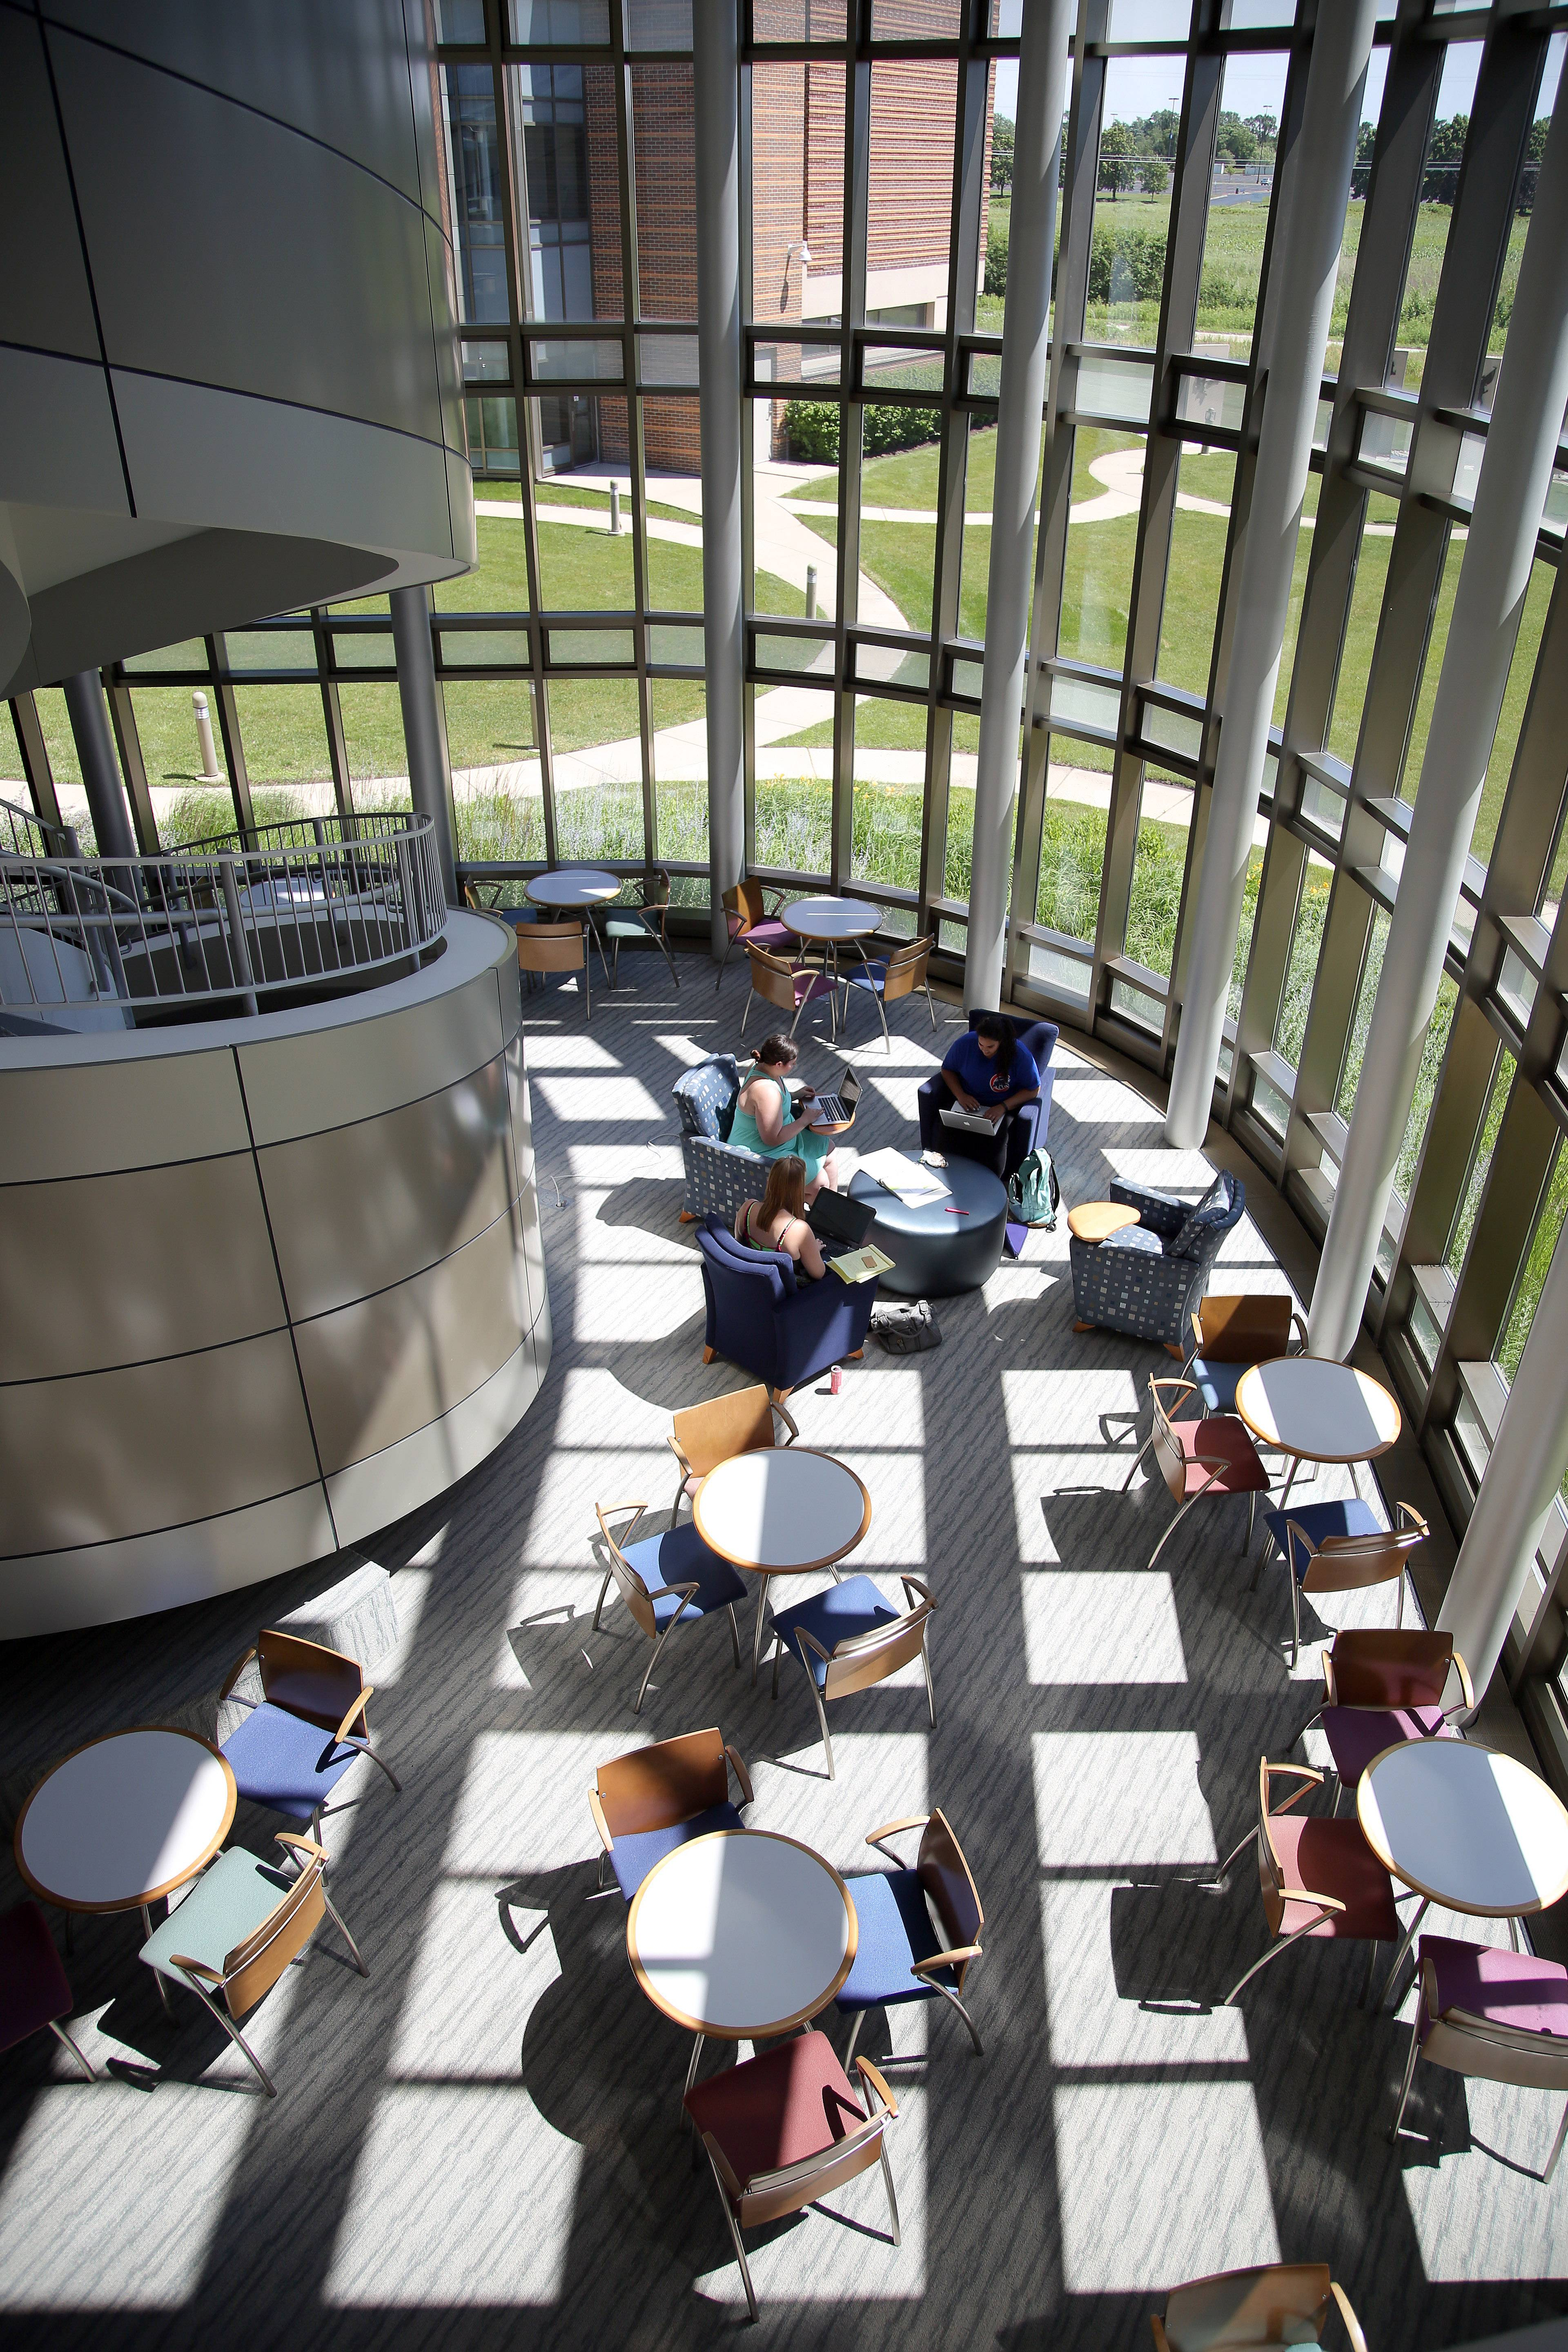 Lack of state funding could end University Center next year